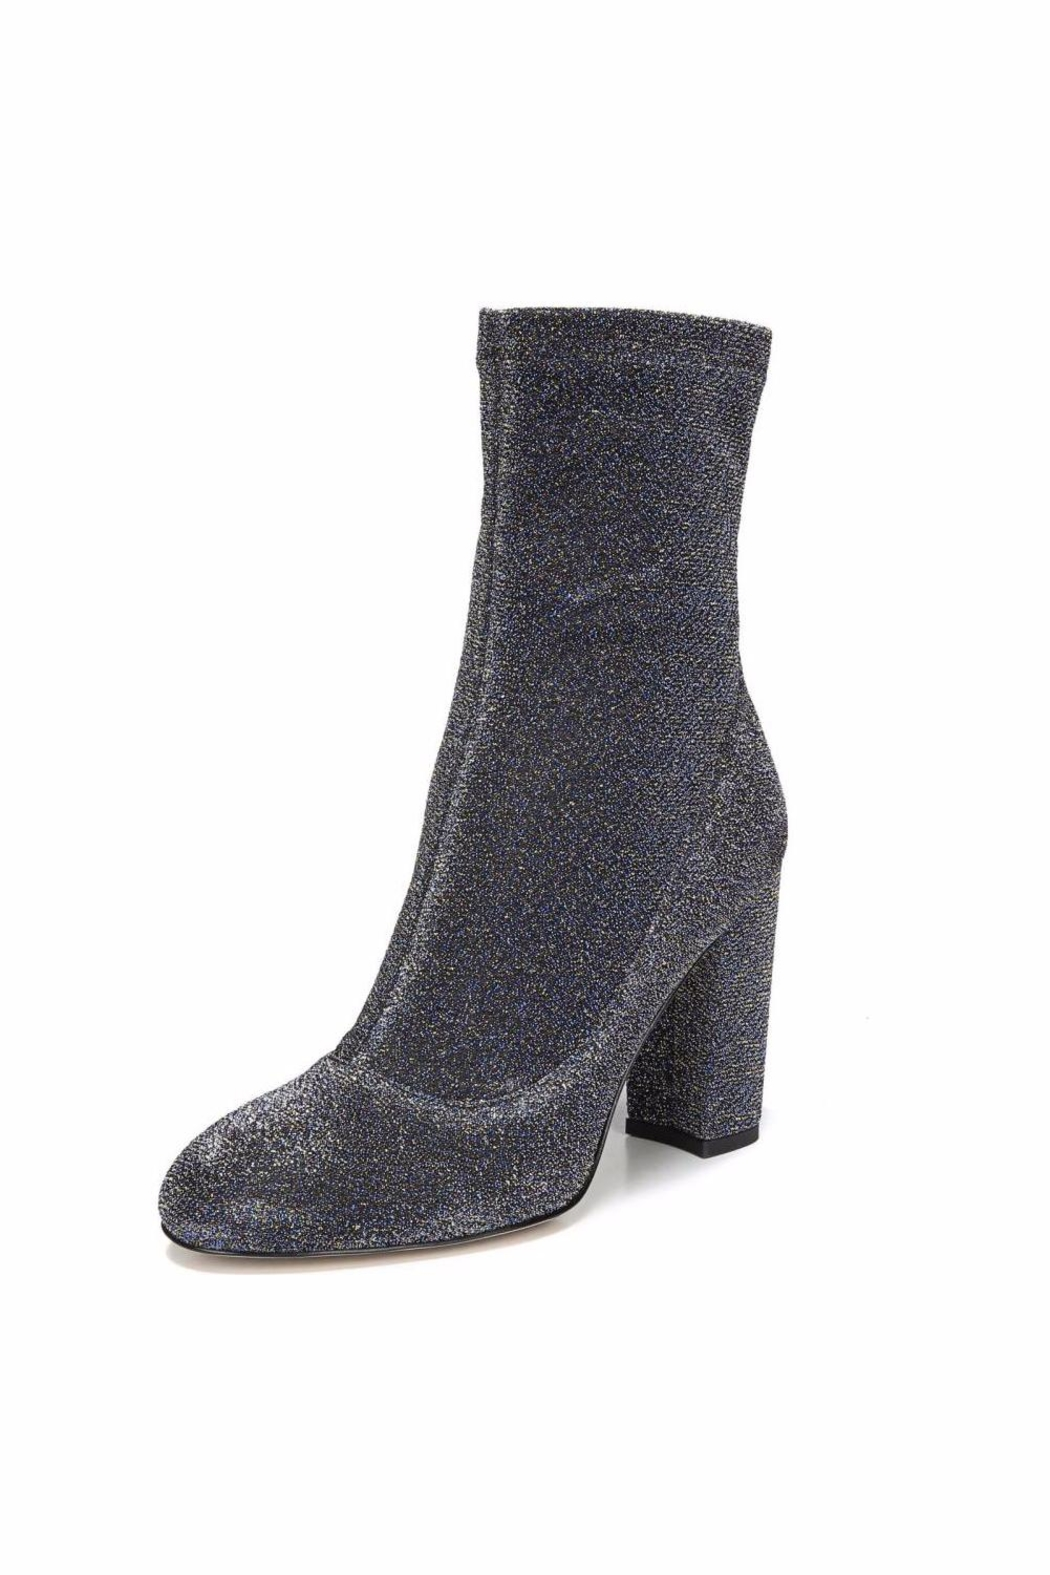 a6891aa35 Sam Edelman Calexa Sock Bootie from Hudson Valley by Bfree — Shoptiques